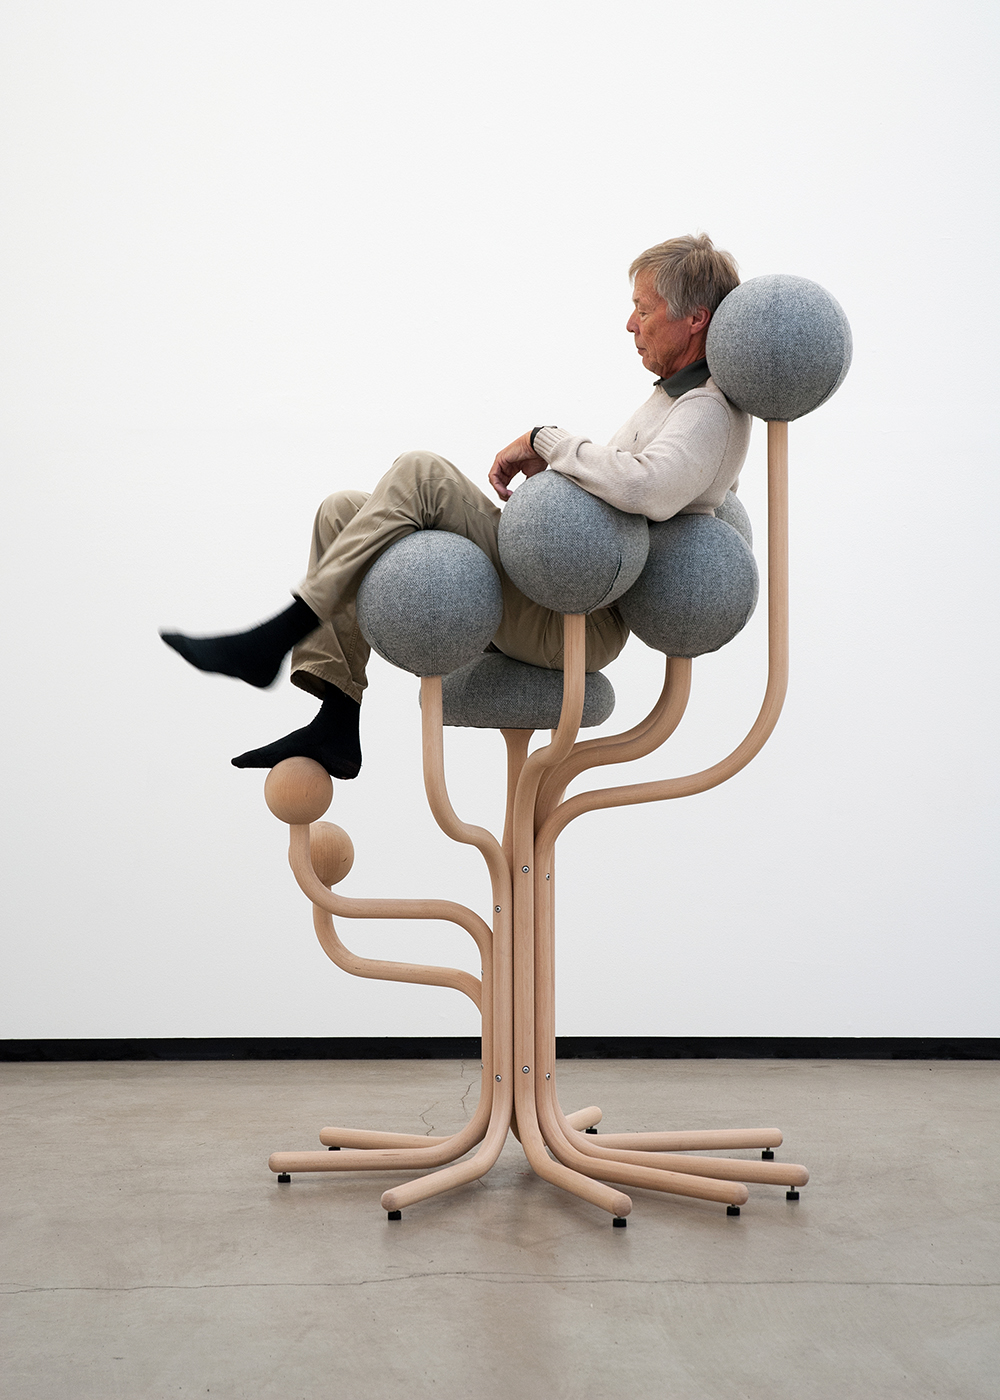 Globe Garden Chair - Peter Opsvik 2